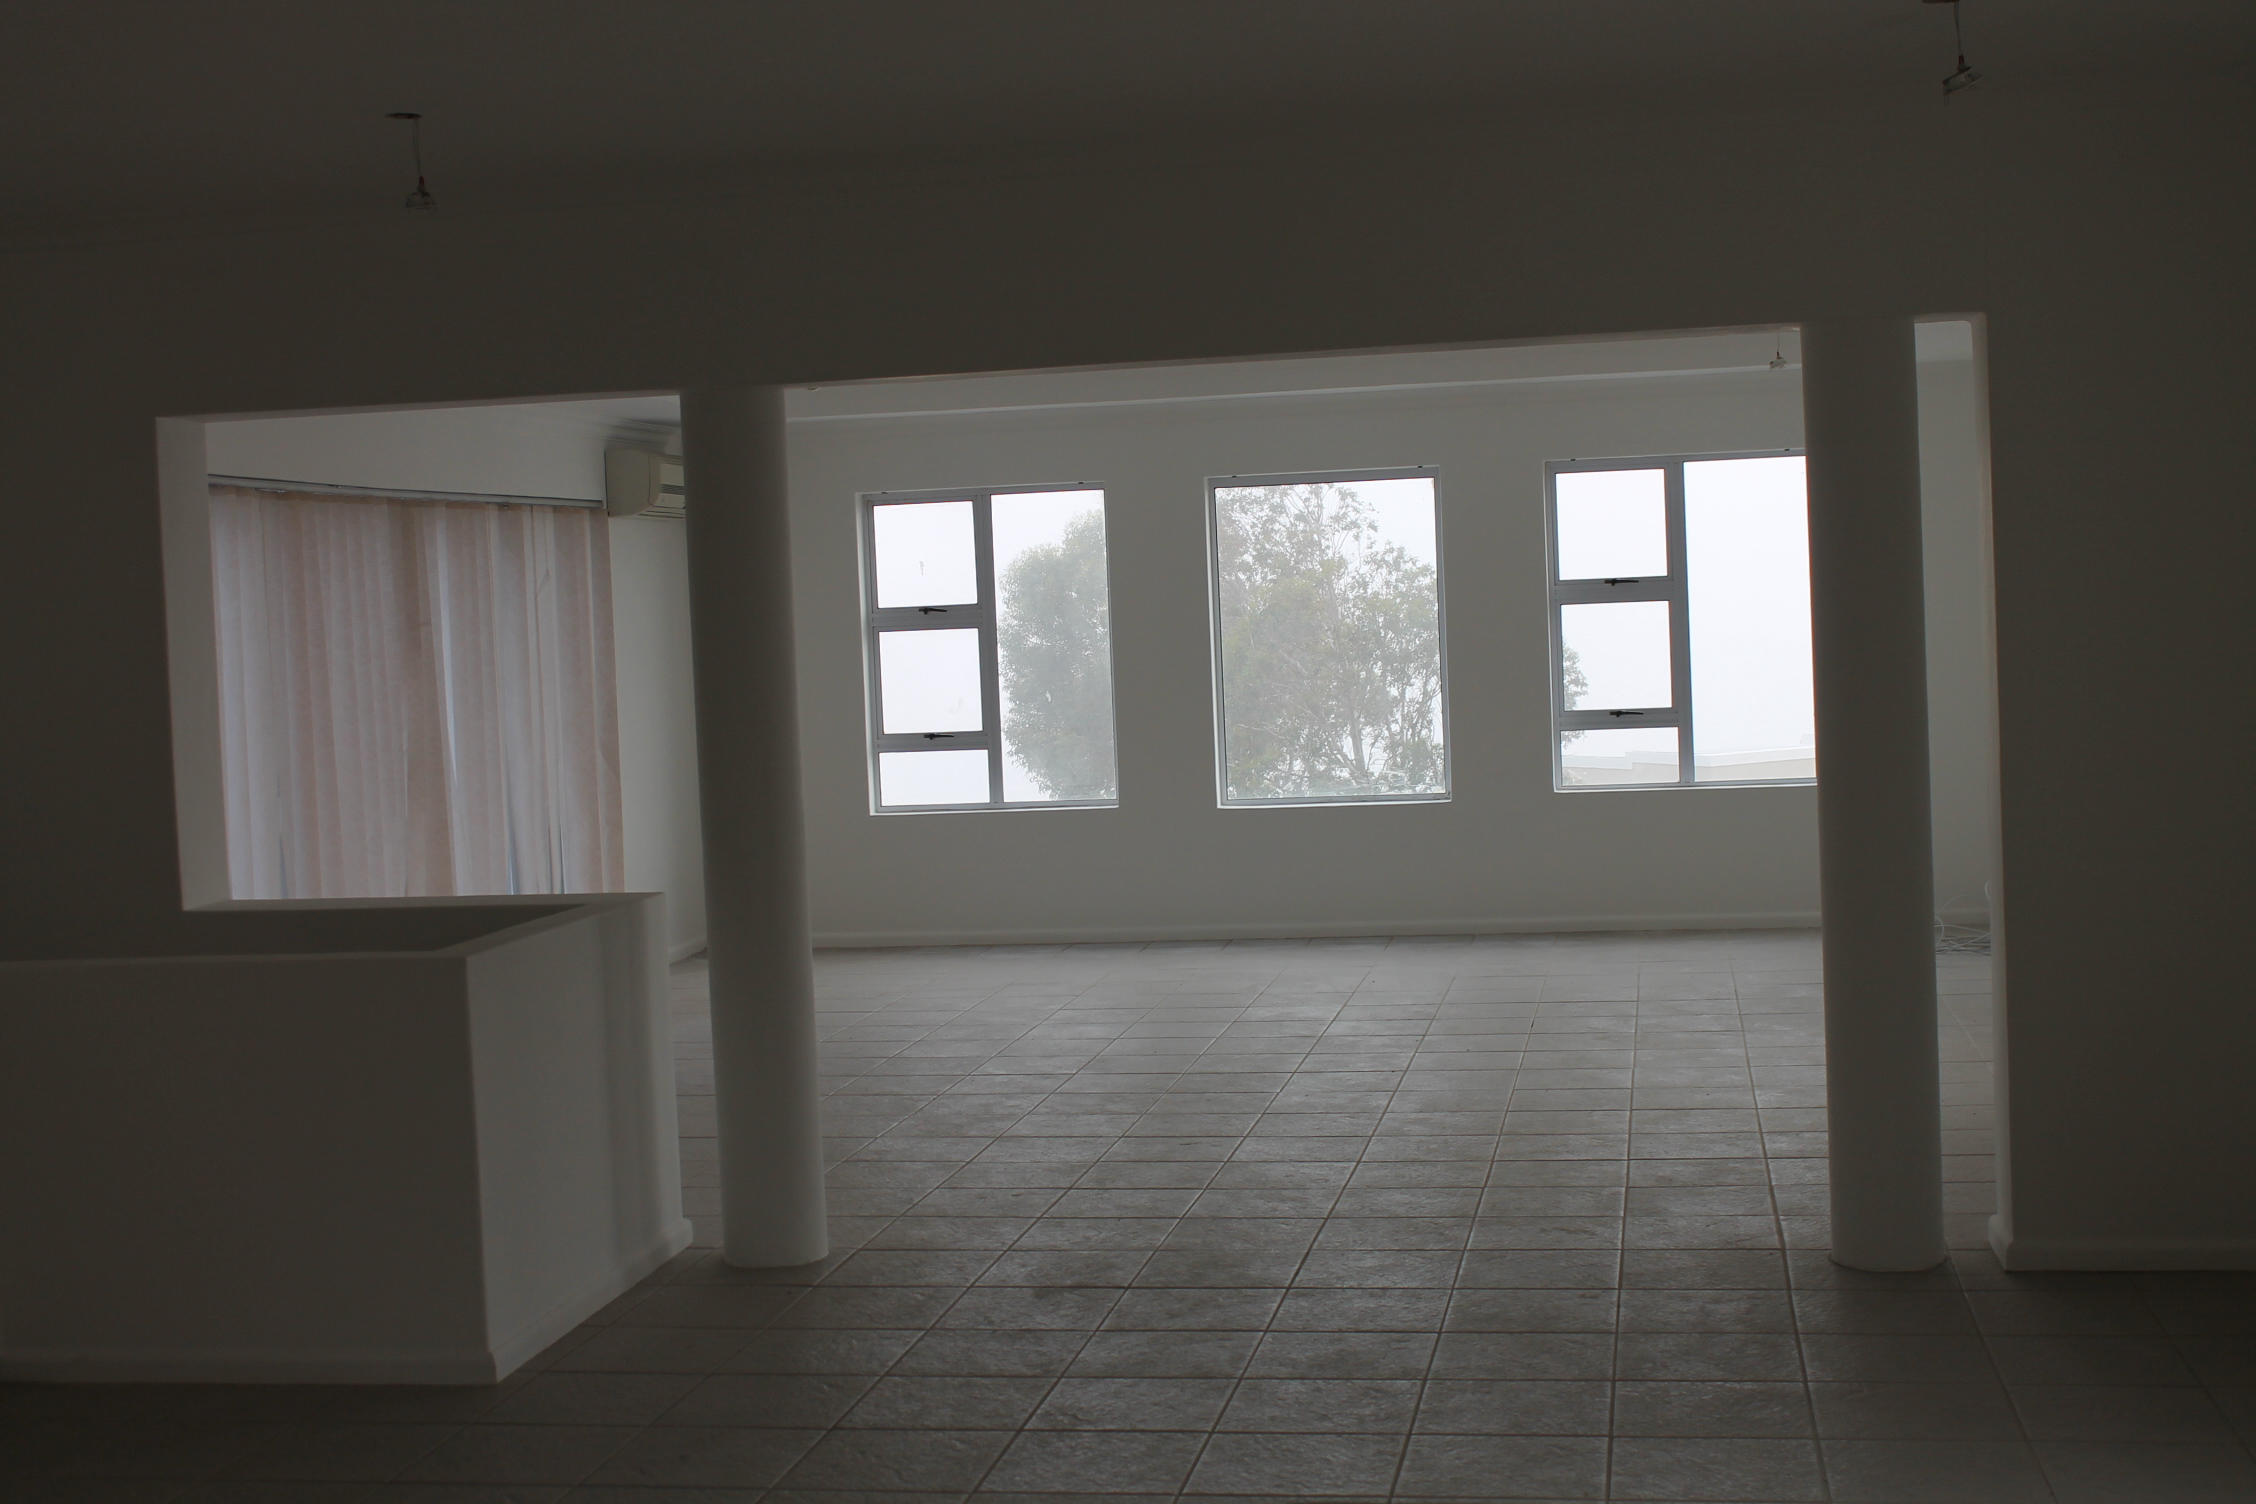 4 Bedroom House for sale in Mountainside ENT0009453 : photo#8